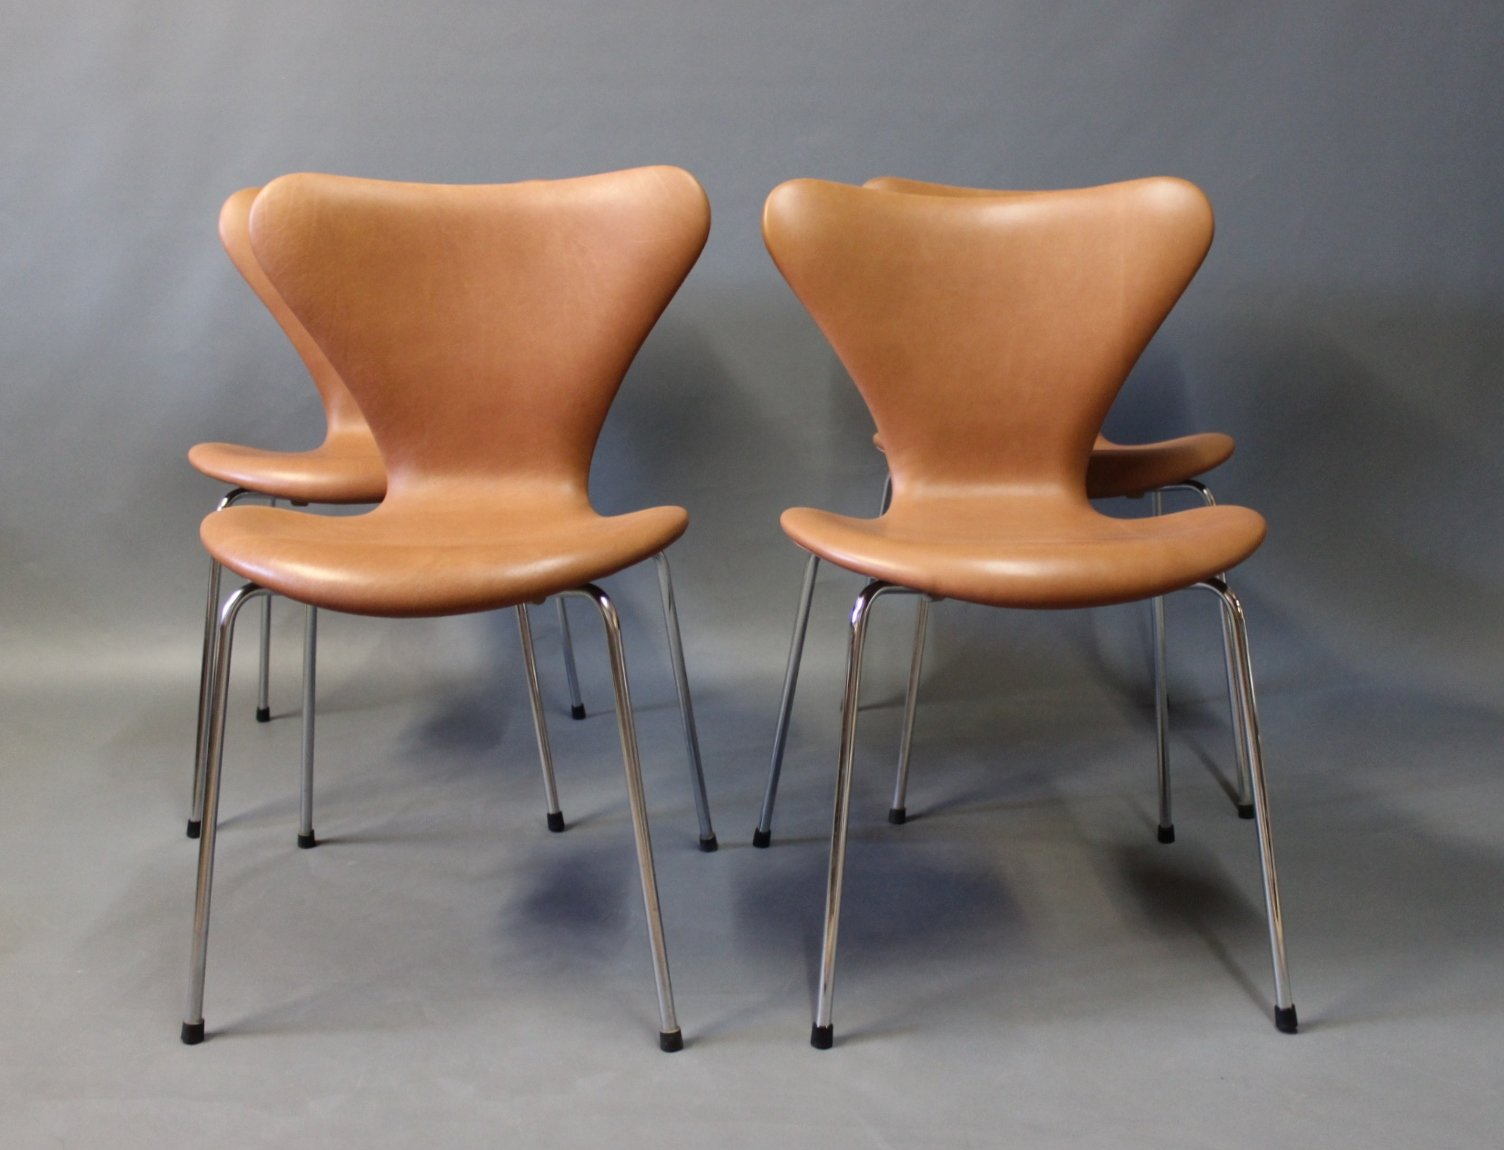 Cognac leather model seven chairs by arne jacobsen for - Arne jacobsen mobel ...